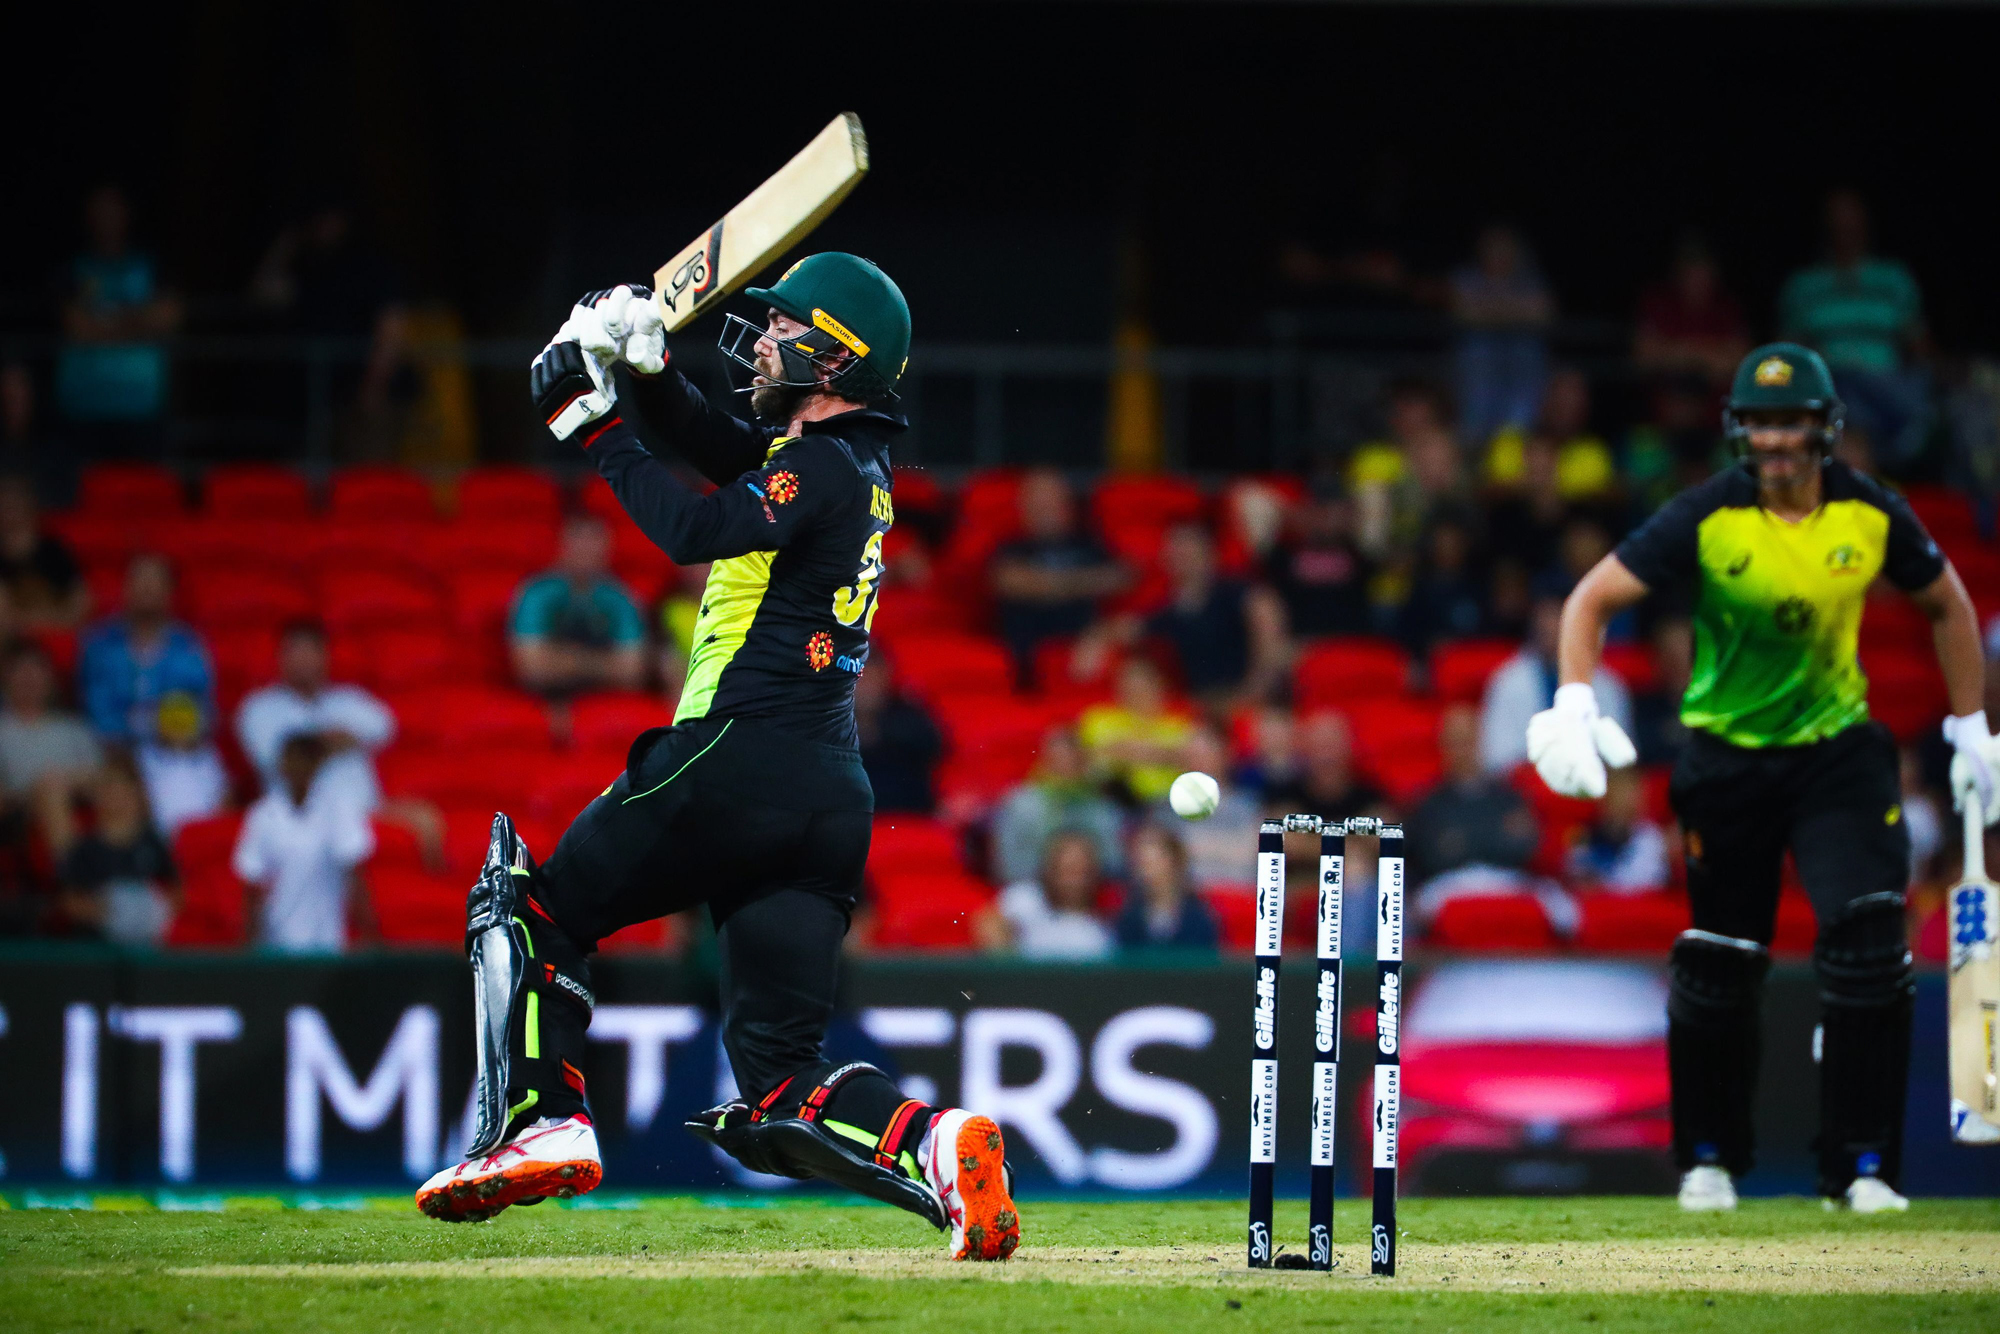 Glenn Maxwell of Australia plays a shot during the T20 international cricket match between Australia and South Africa at Metricon Stadium on the Gold Coast on November 17, 2018. (Photo by Patrick HAMILTON / AFP) / -- IMAGE RESTRICTED TO EDITORIAL USE - ST